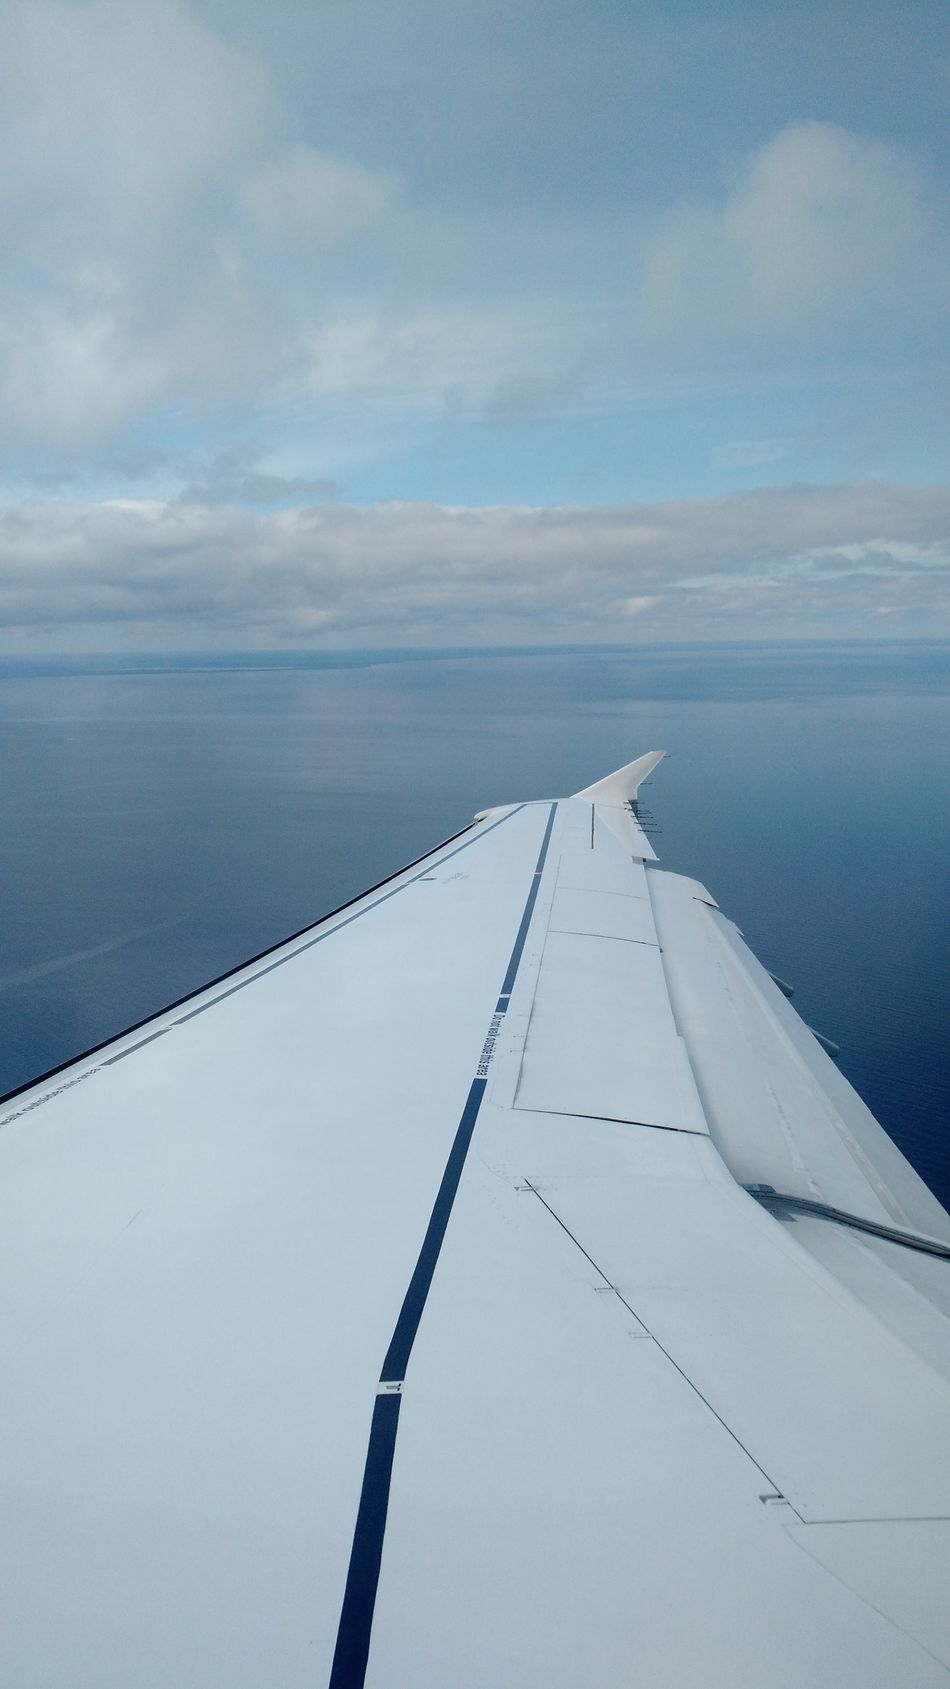 Airplane Wing AirPlane ✈ Airplaneview Beauty In Nature Blue Cloud Cloud - Sky Cropped Day Idyllic Nature No People Ocean Outdoors Part Of Scenics Sky Tranquil Scene Tranquility